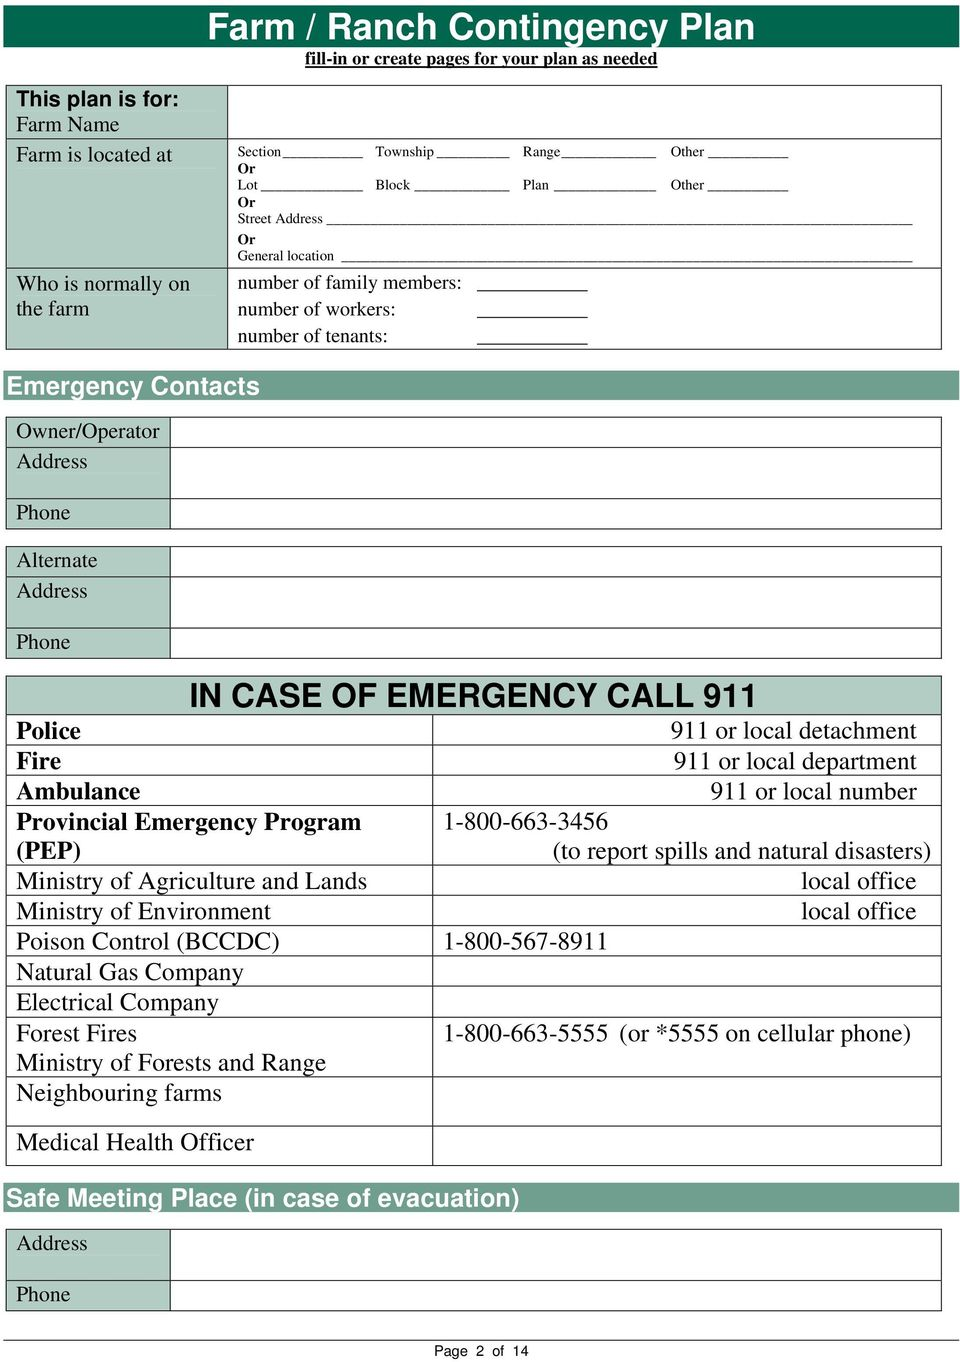 EMERGENCY CALL 911 Police Fire Ambulance Provincial Emergency Program (PEP) Ministry of Agriculture and Lands Ministry of Environment Poison Control (BCCDC) 1-800-567-8911 Natural Gas Company